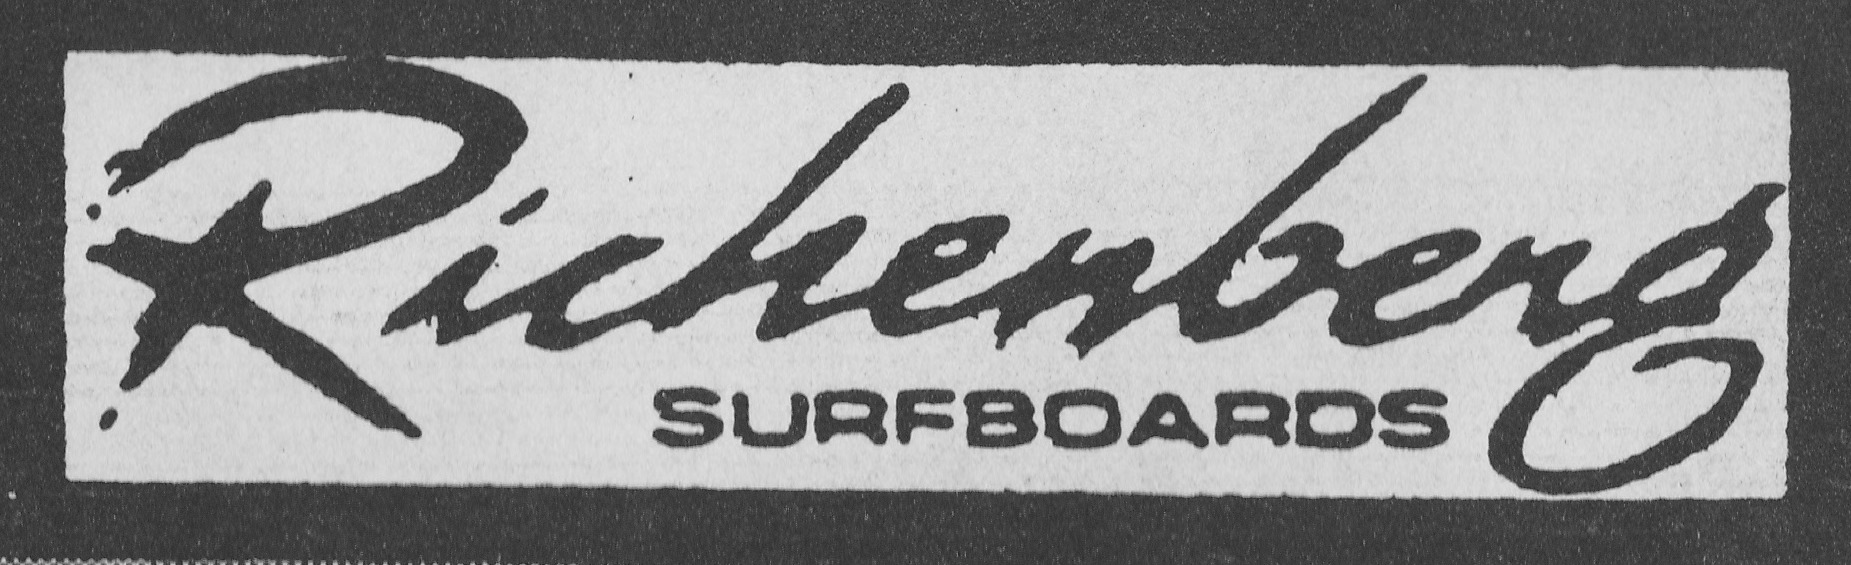 Richenberg Surfboards